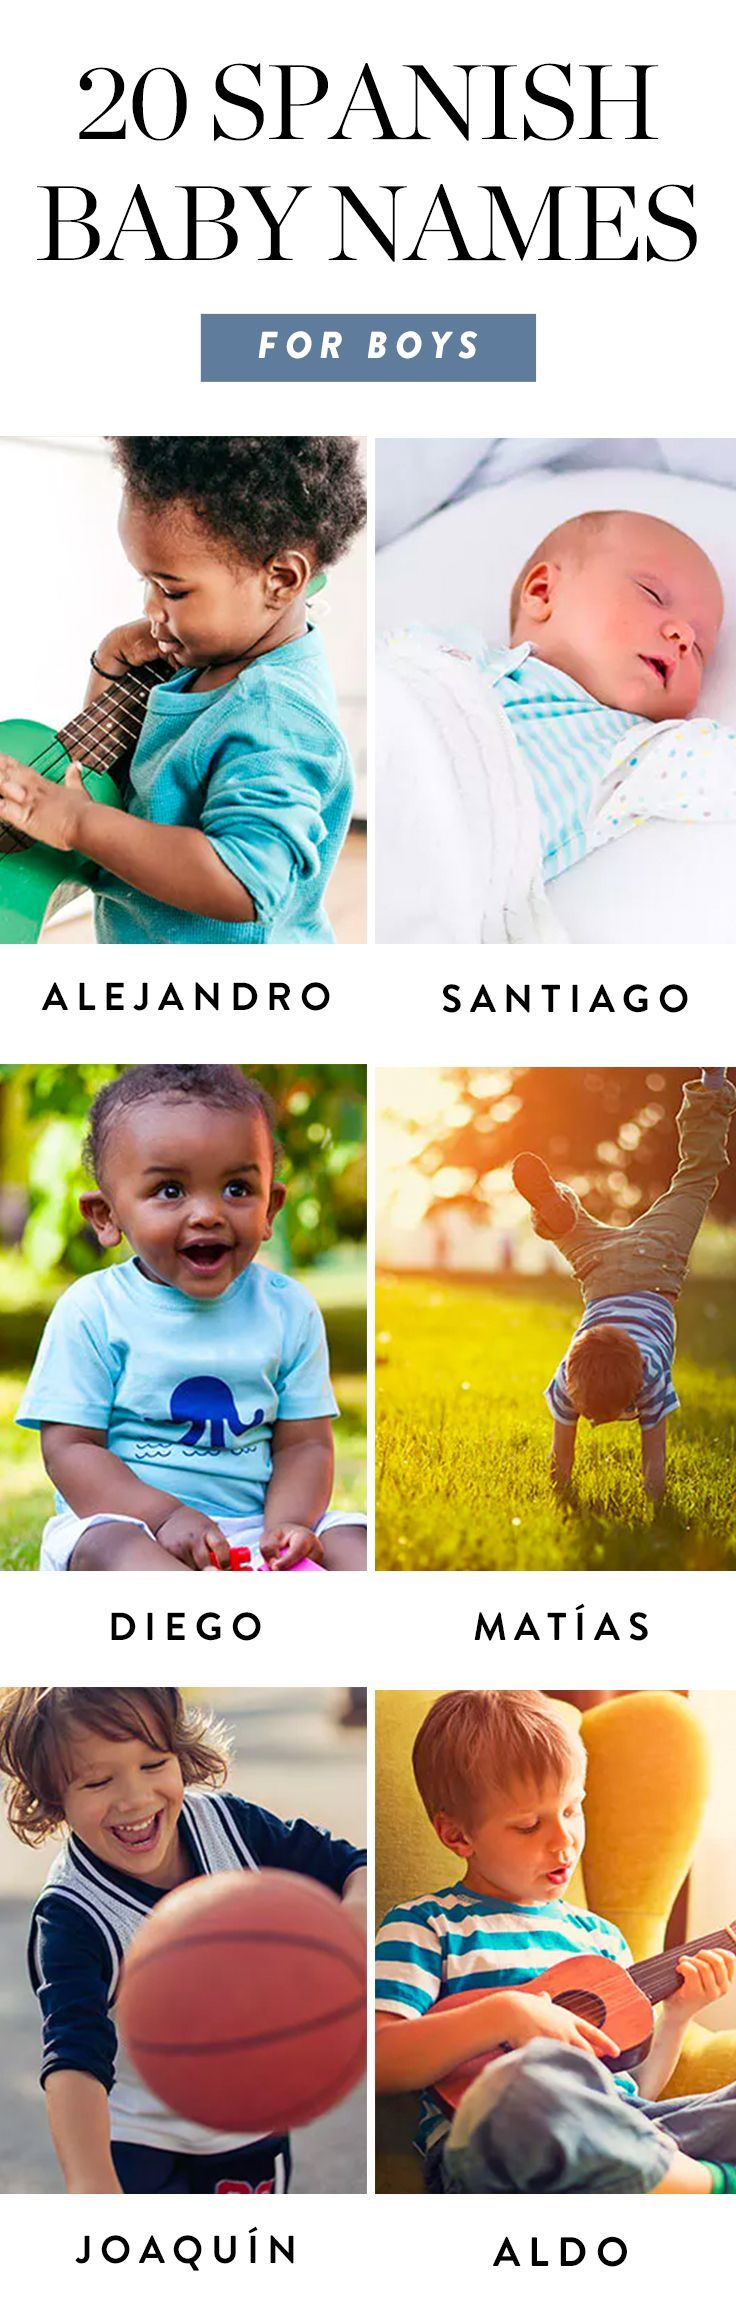 Italian Boy Name: 20 Spanish Baby Names For Boys That Are Muy Bonito